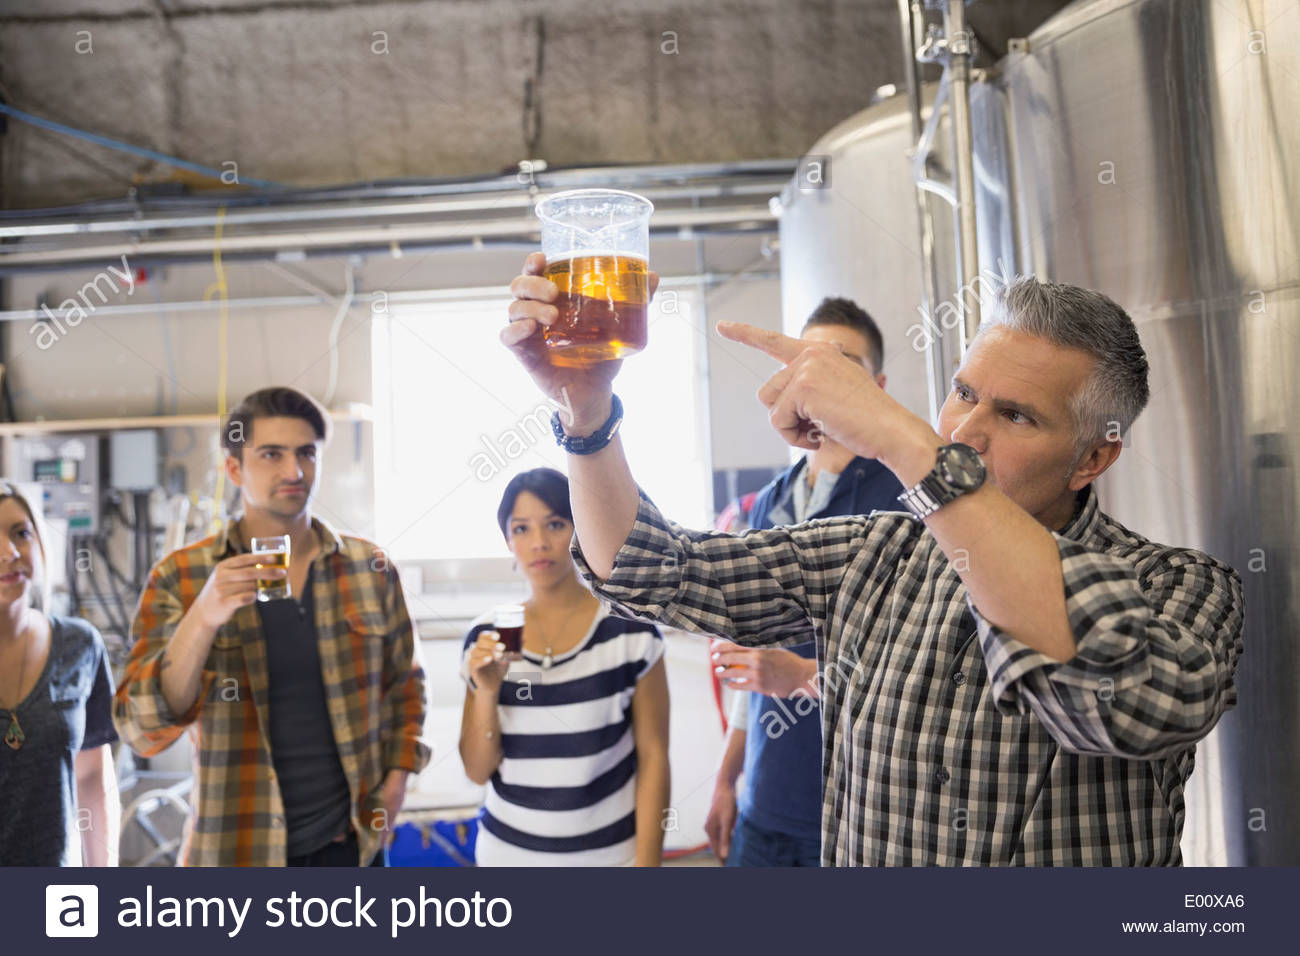 Brewery tour guide pointing to beer in beaker - Stock Image